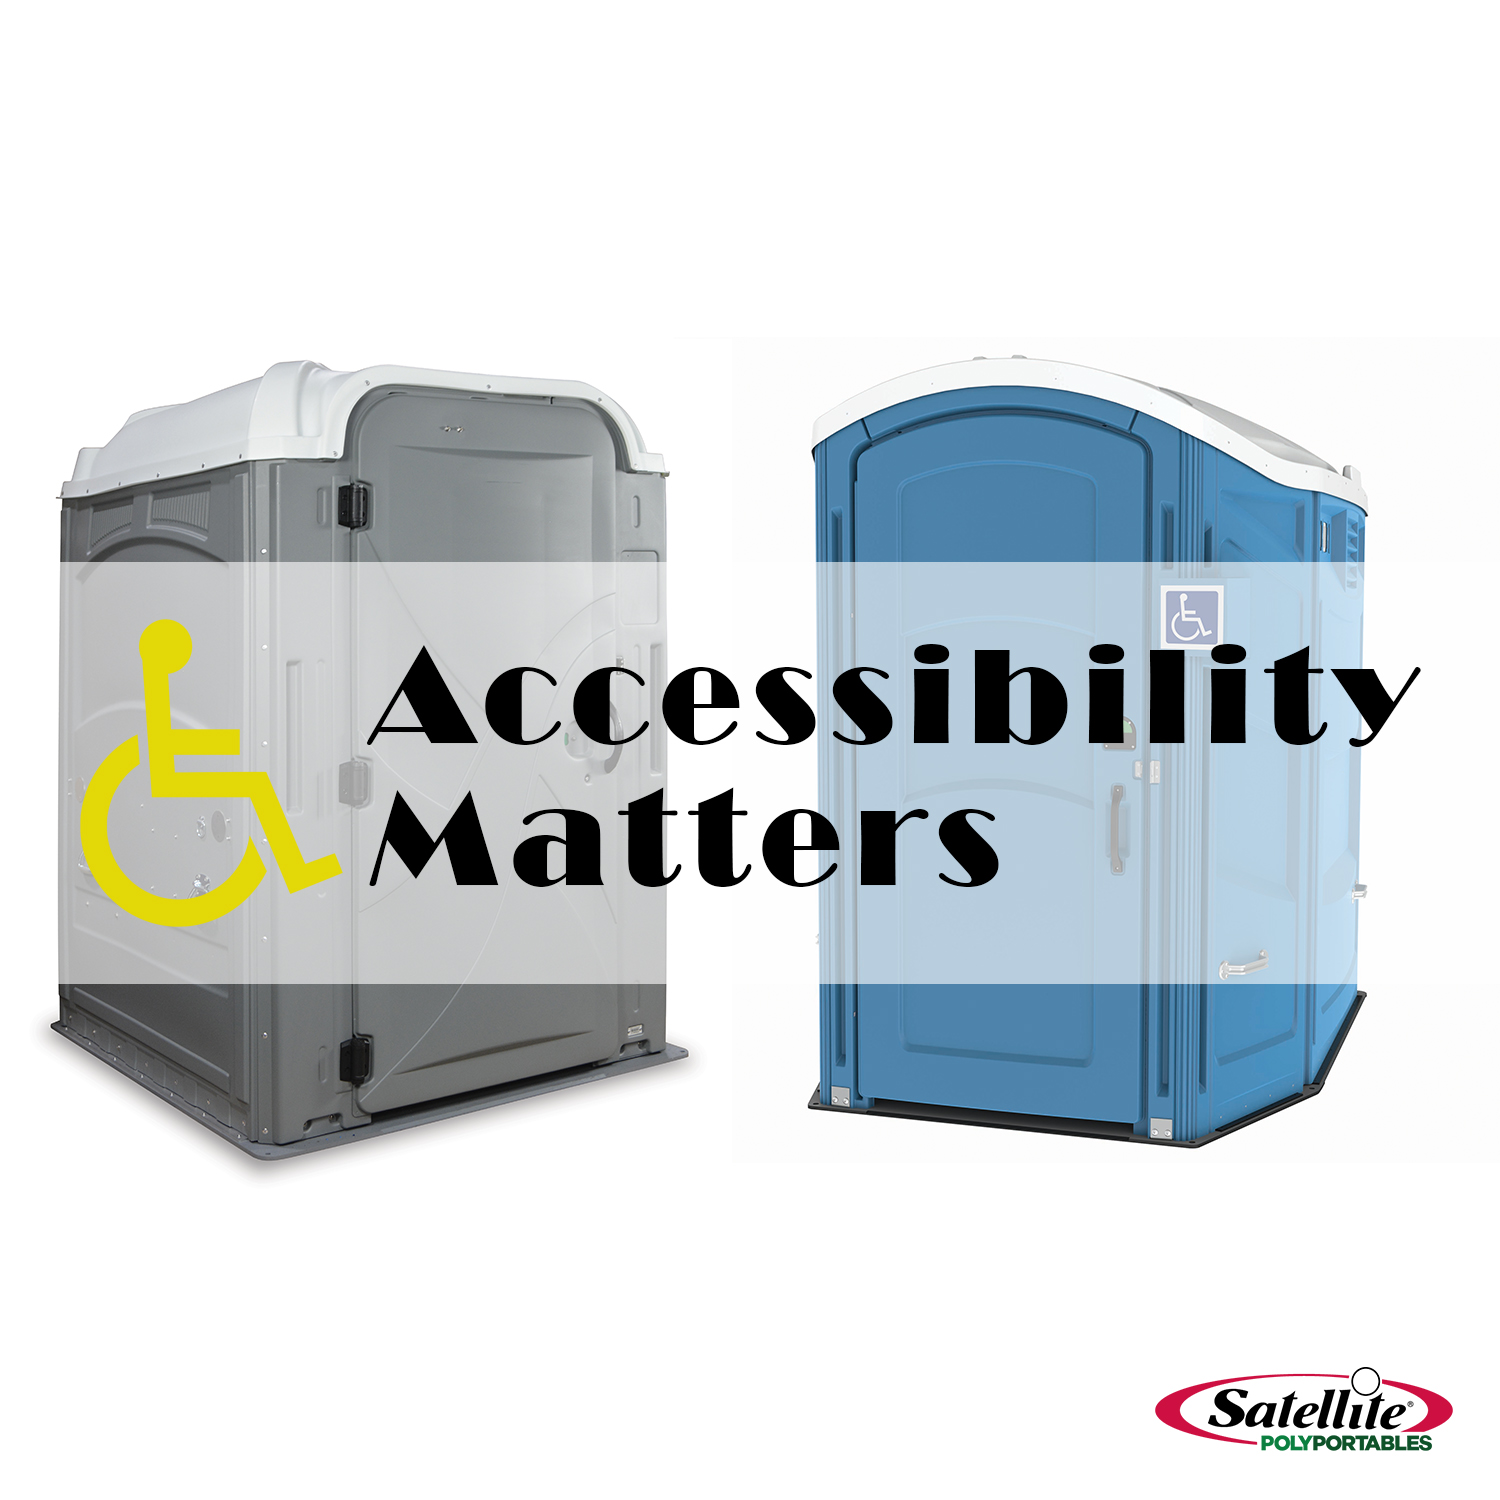 ADA Sanitation Equipment from Satellite PolyPortables